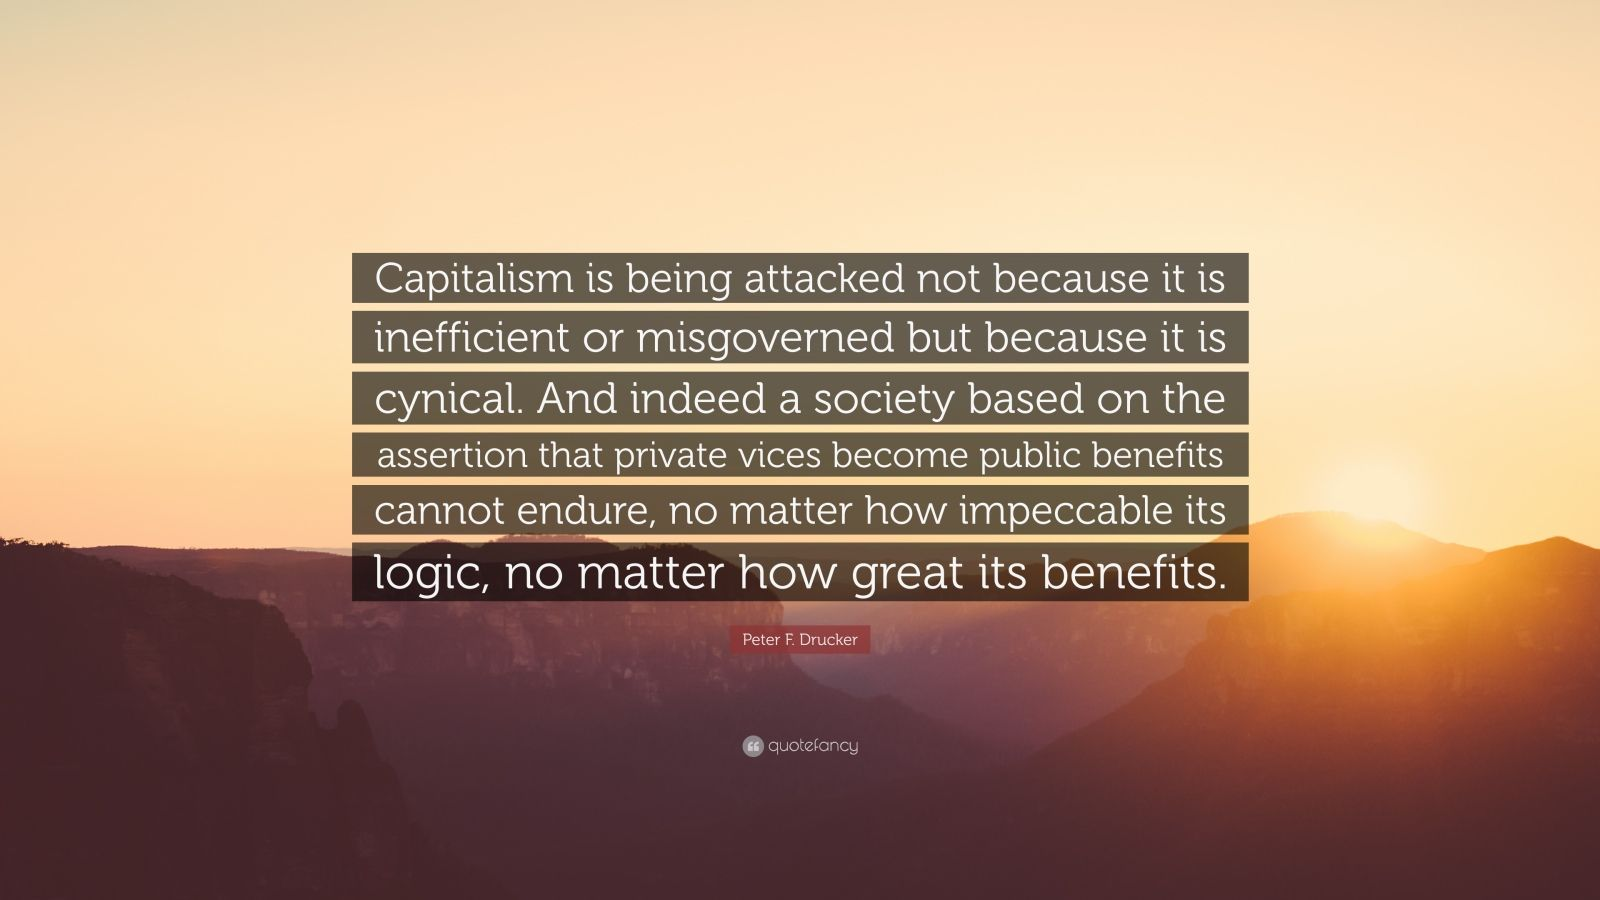 """Peter F. Drucker Quote: """"Capitalism is being attacked not because it is inefficient or misgoverned but because it is cynical. And indeed a society based on the assertion that private vices become public benefits cannot endure, no matter how impeccable its logic, no matter how great its benefits."""""""